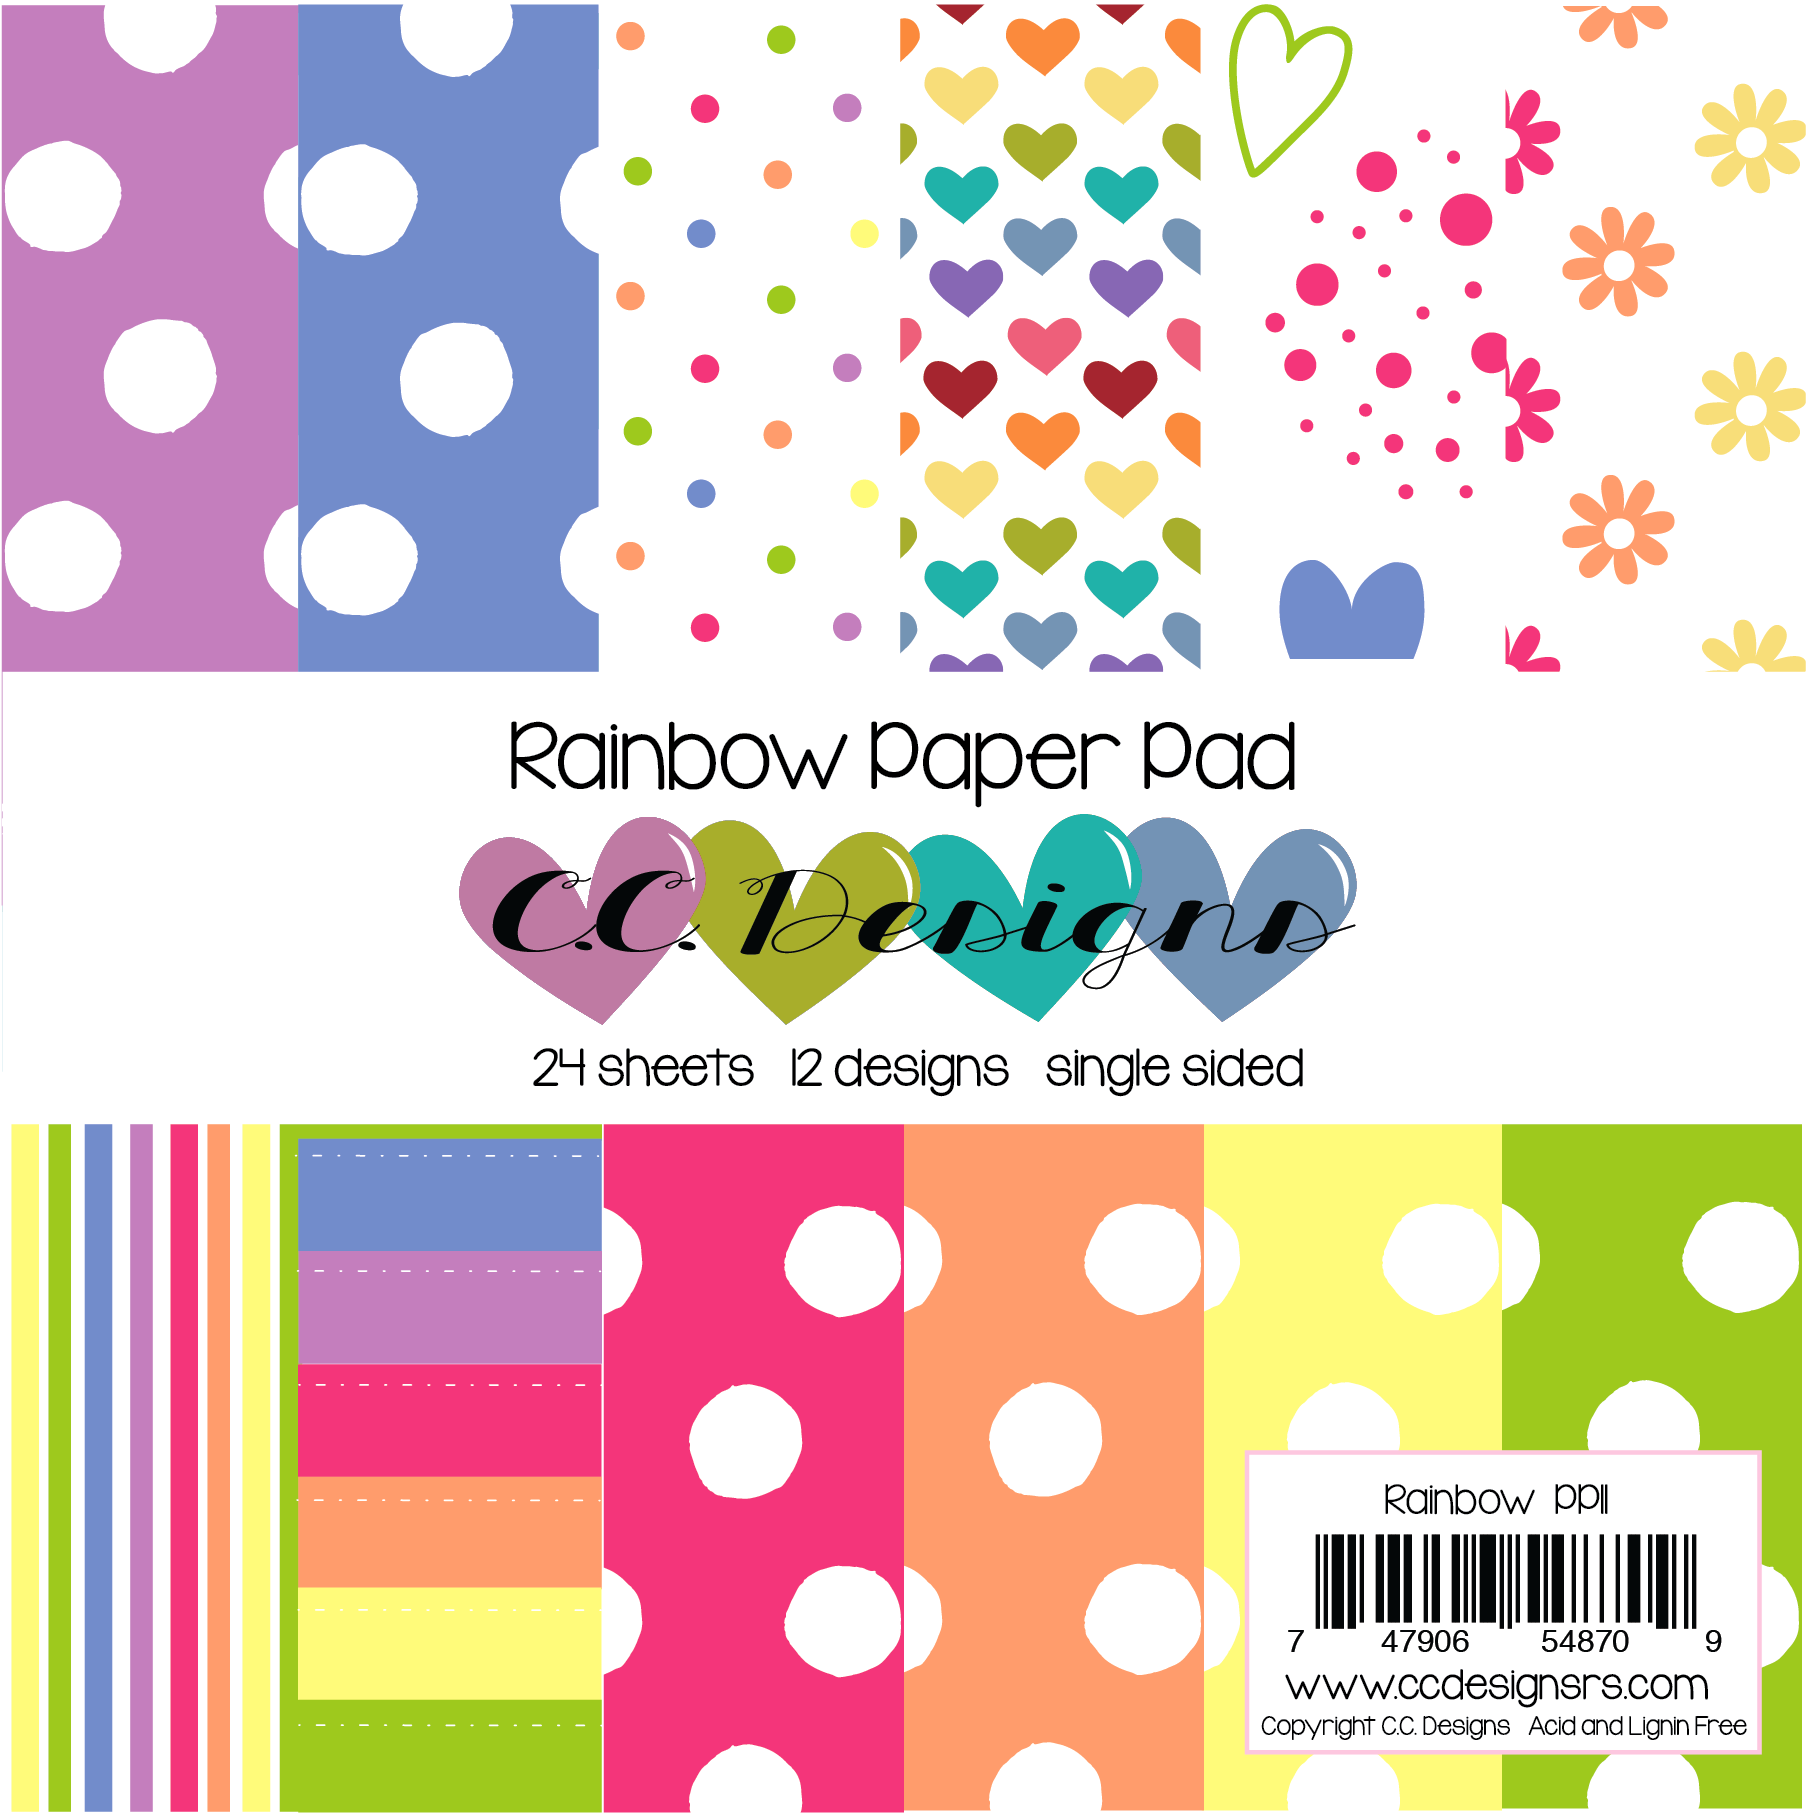 *NEW* - CC Designs - Rainbow Paper Pad